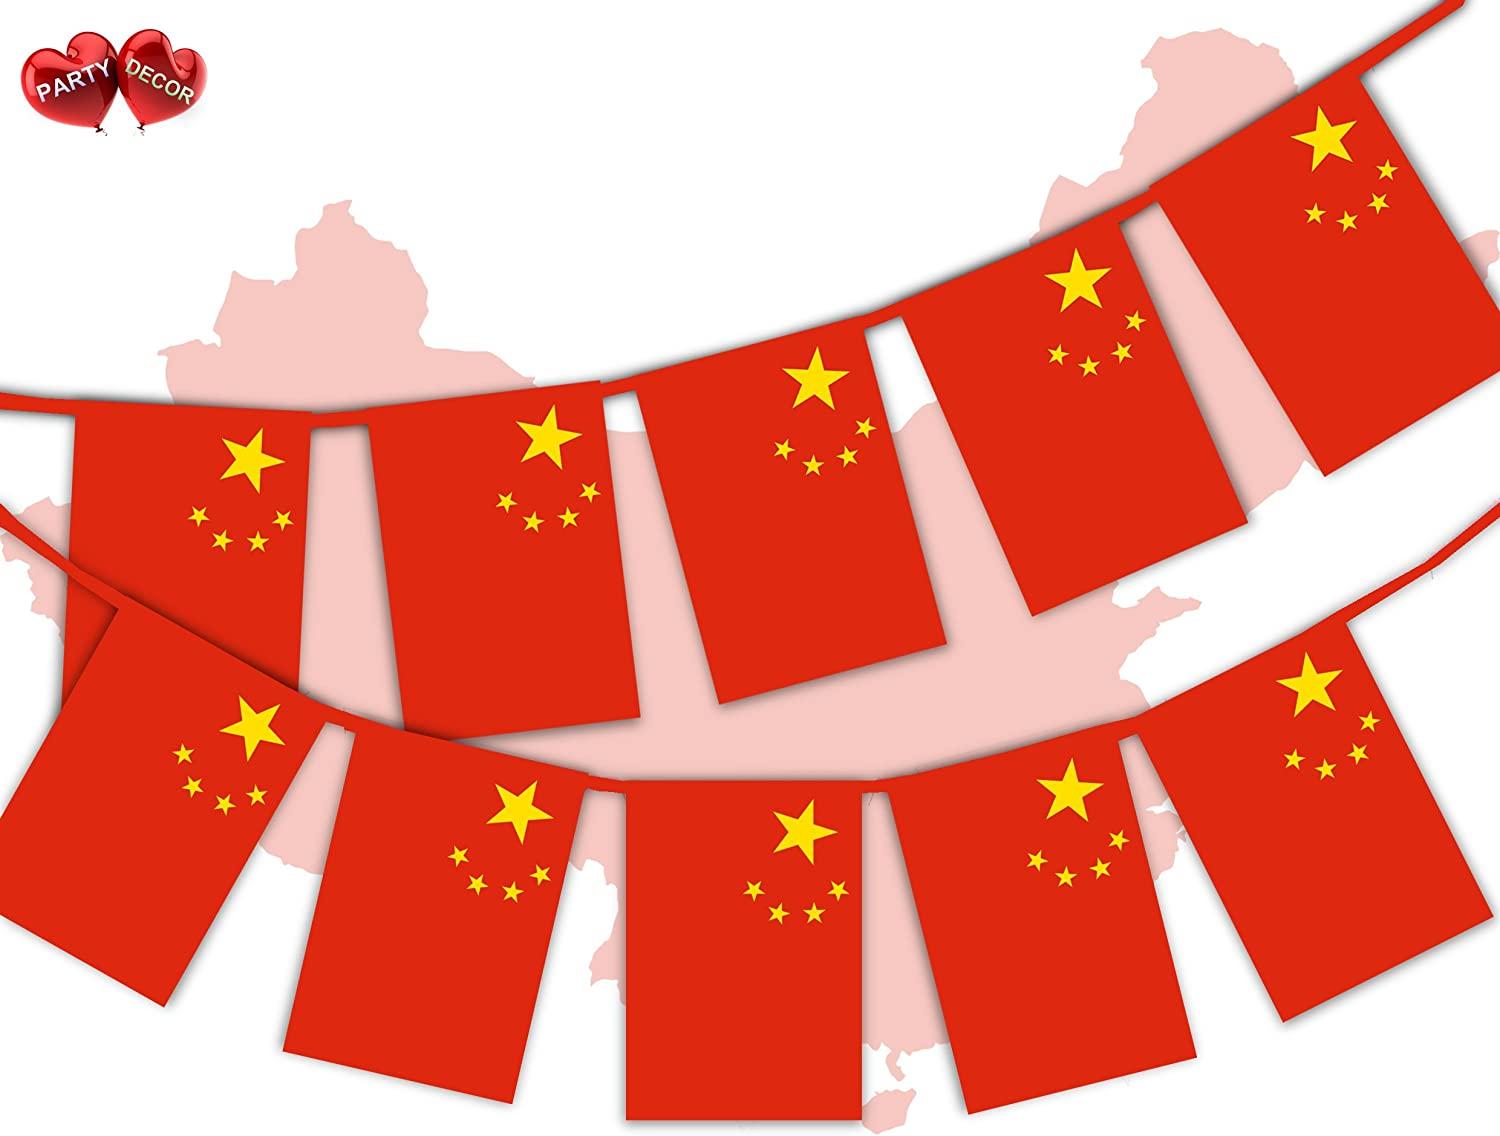 Party Decor China Full Flag Patriotic Themed Bunting Banner 12 Rectangular flags for guaranteed simply stylish party National Royal decoration